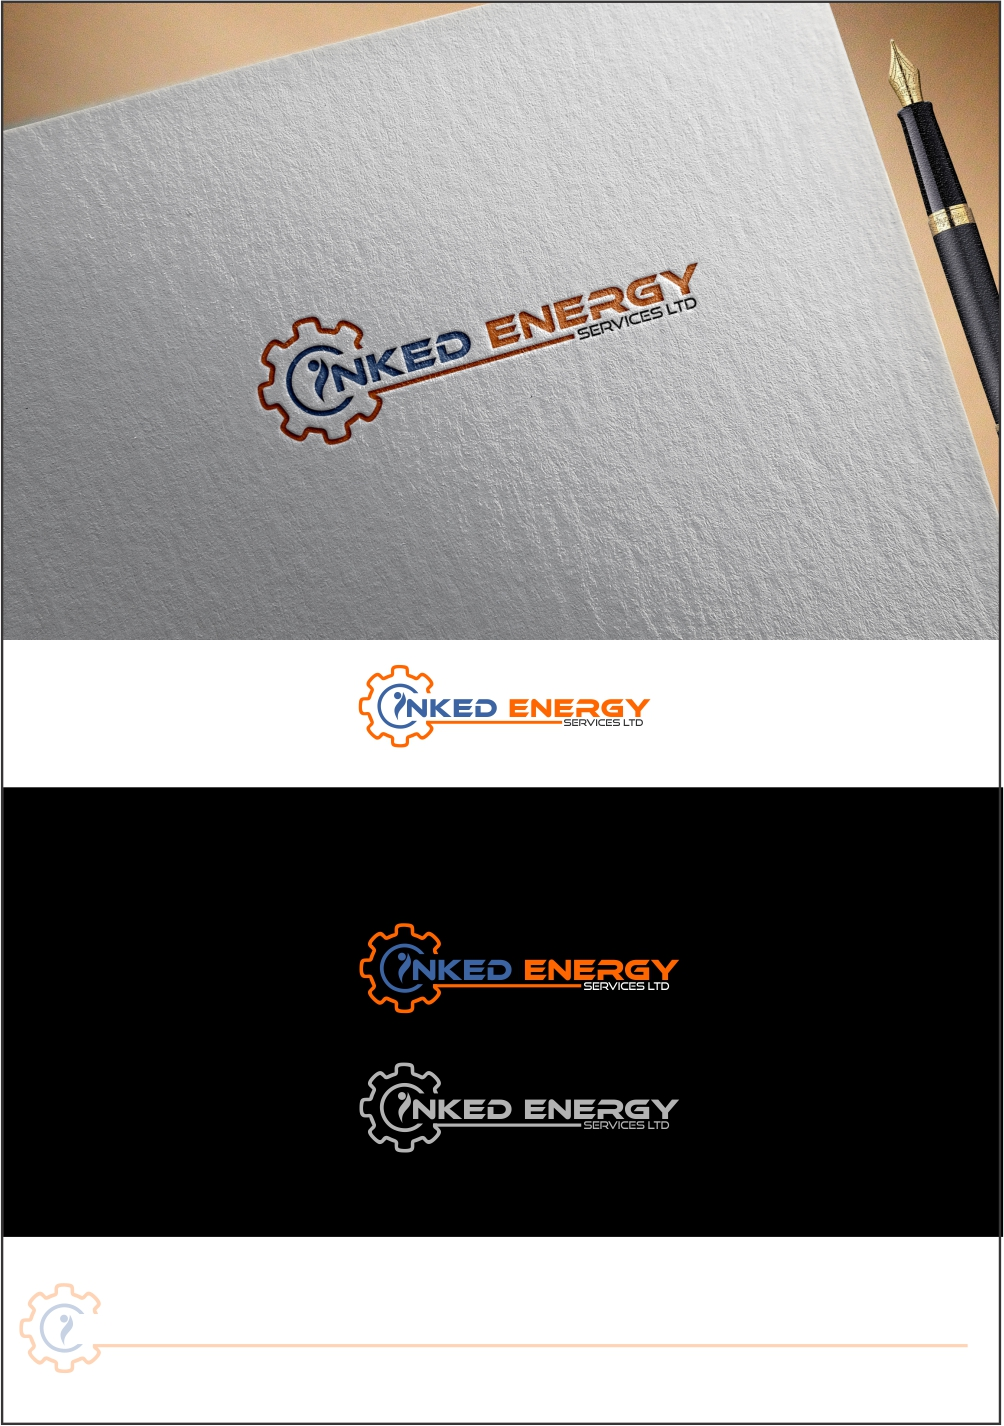 Logo Design by ian69 - Entry No. 127 in the Logo Design Contest Creative Logo Design for INKED ENERGY SERVICES LTD.